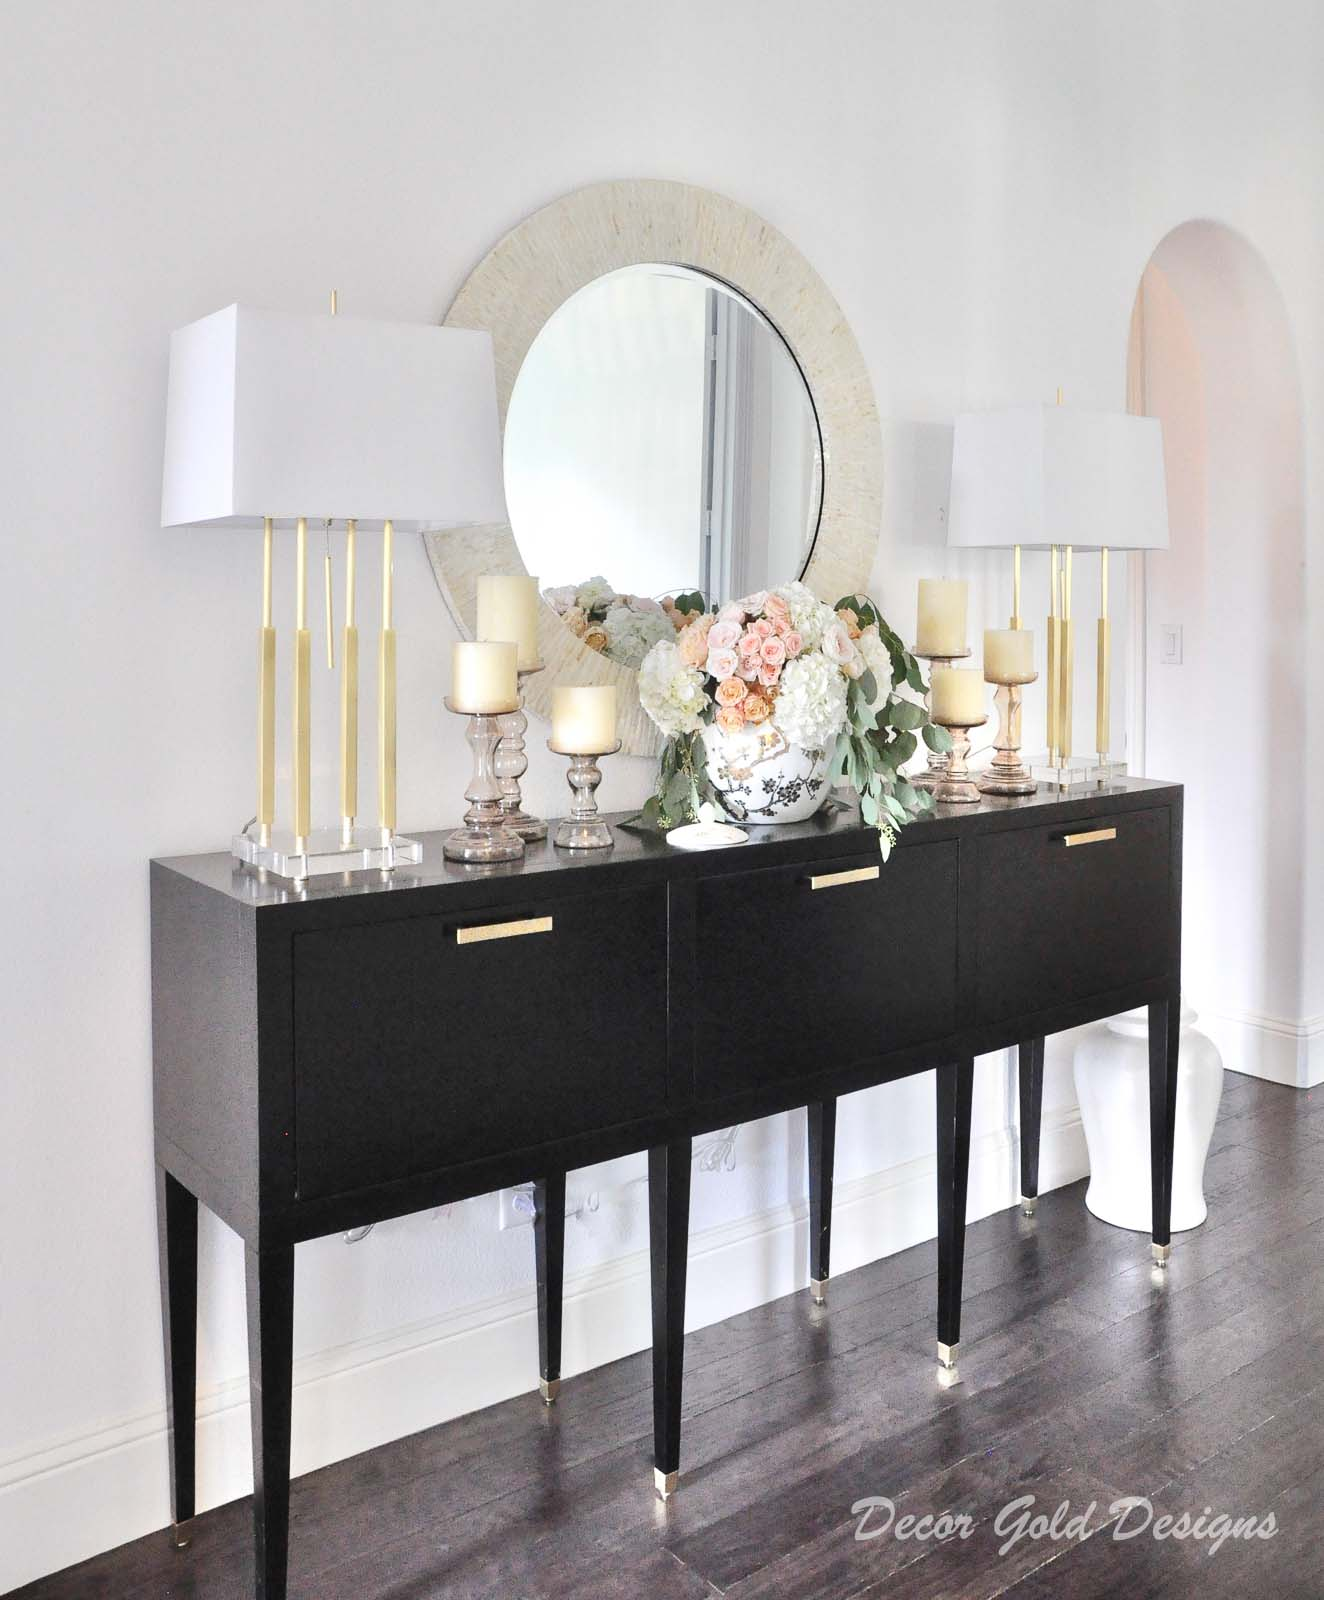 Entryway furniture mirror lamps